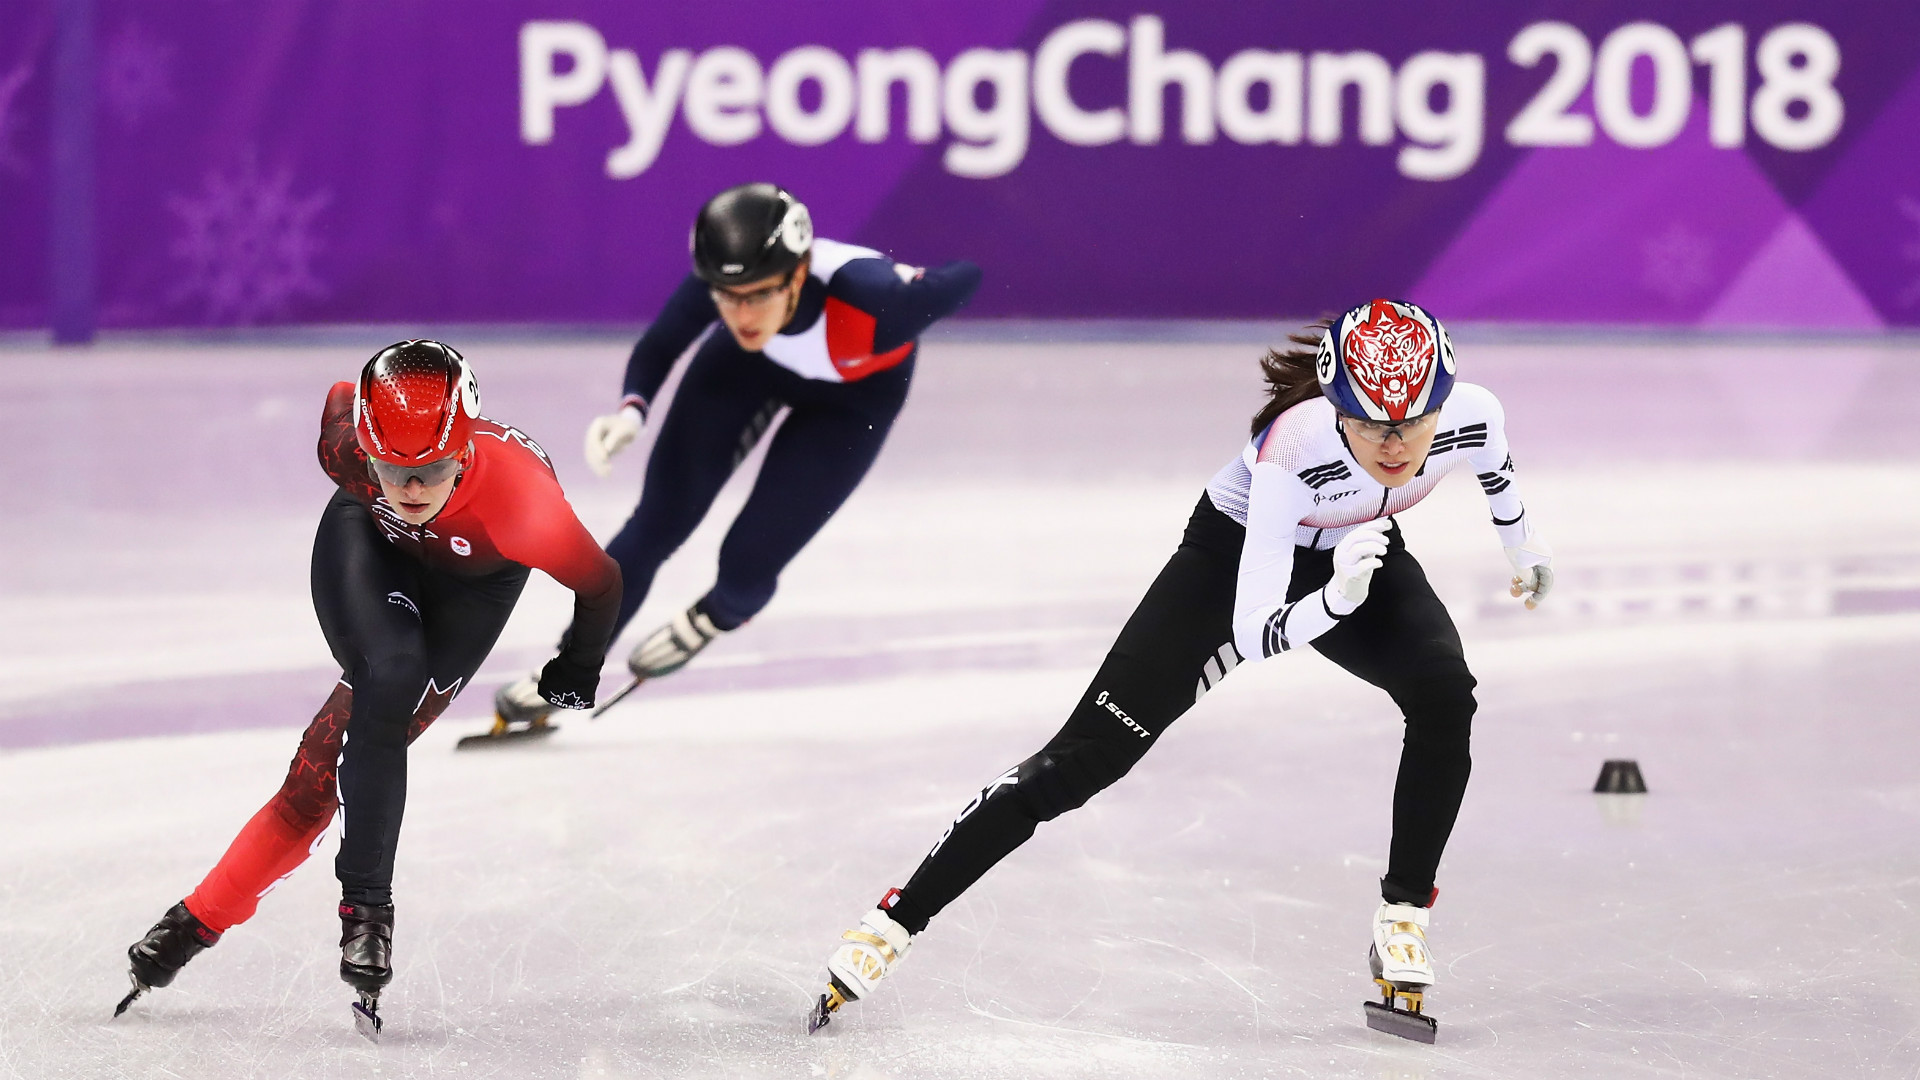 Watch men's 1000m short track speedskating final online